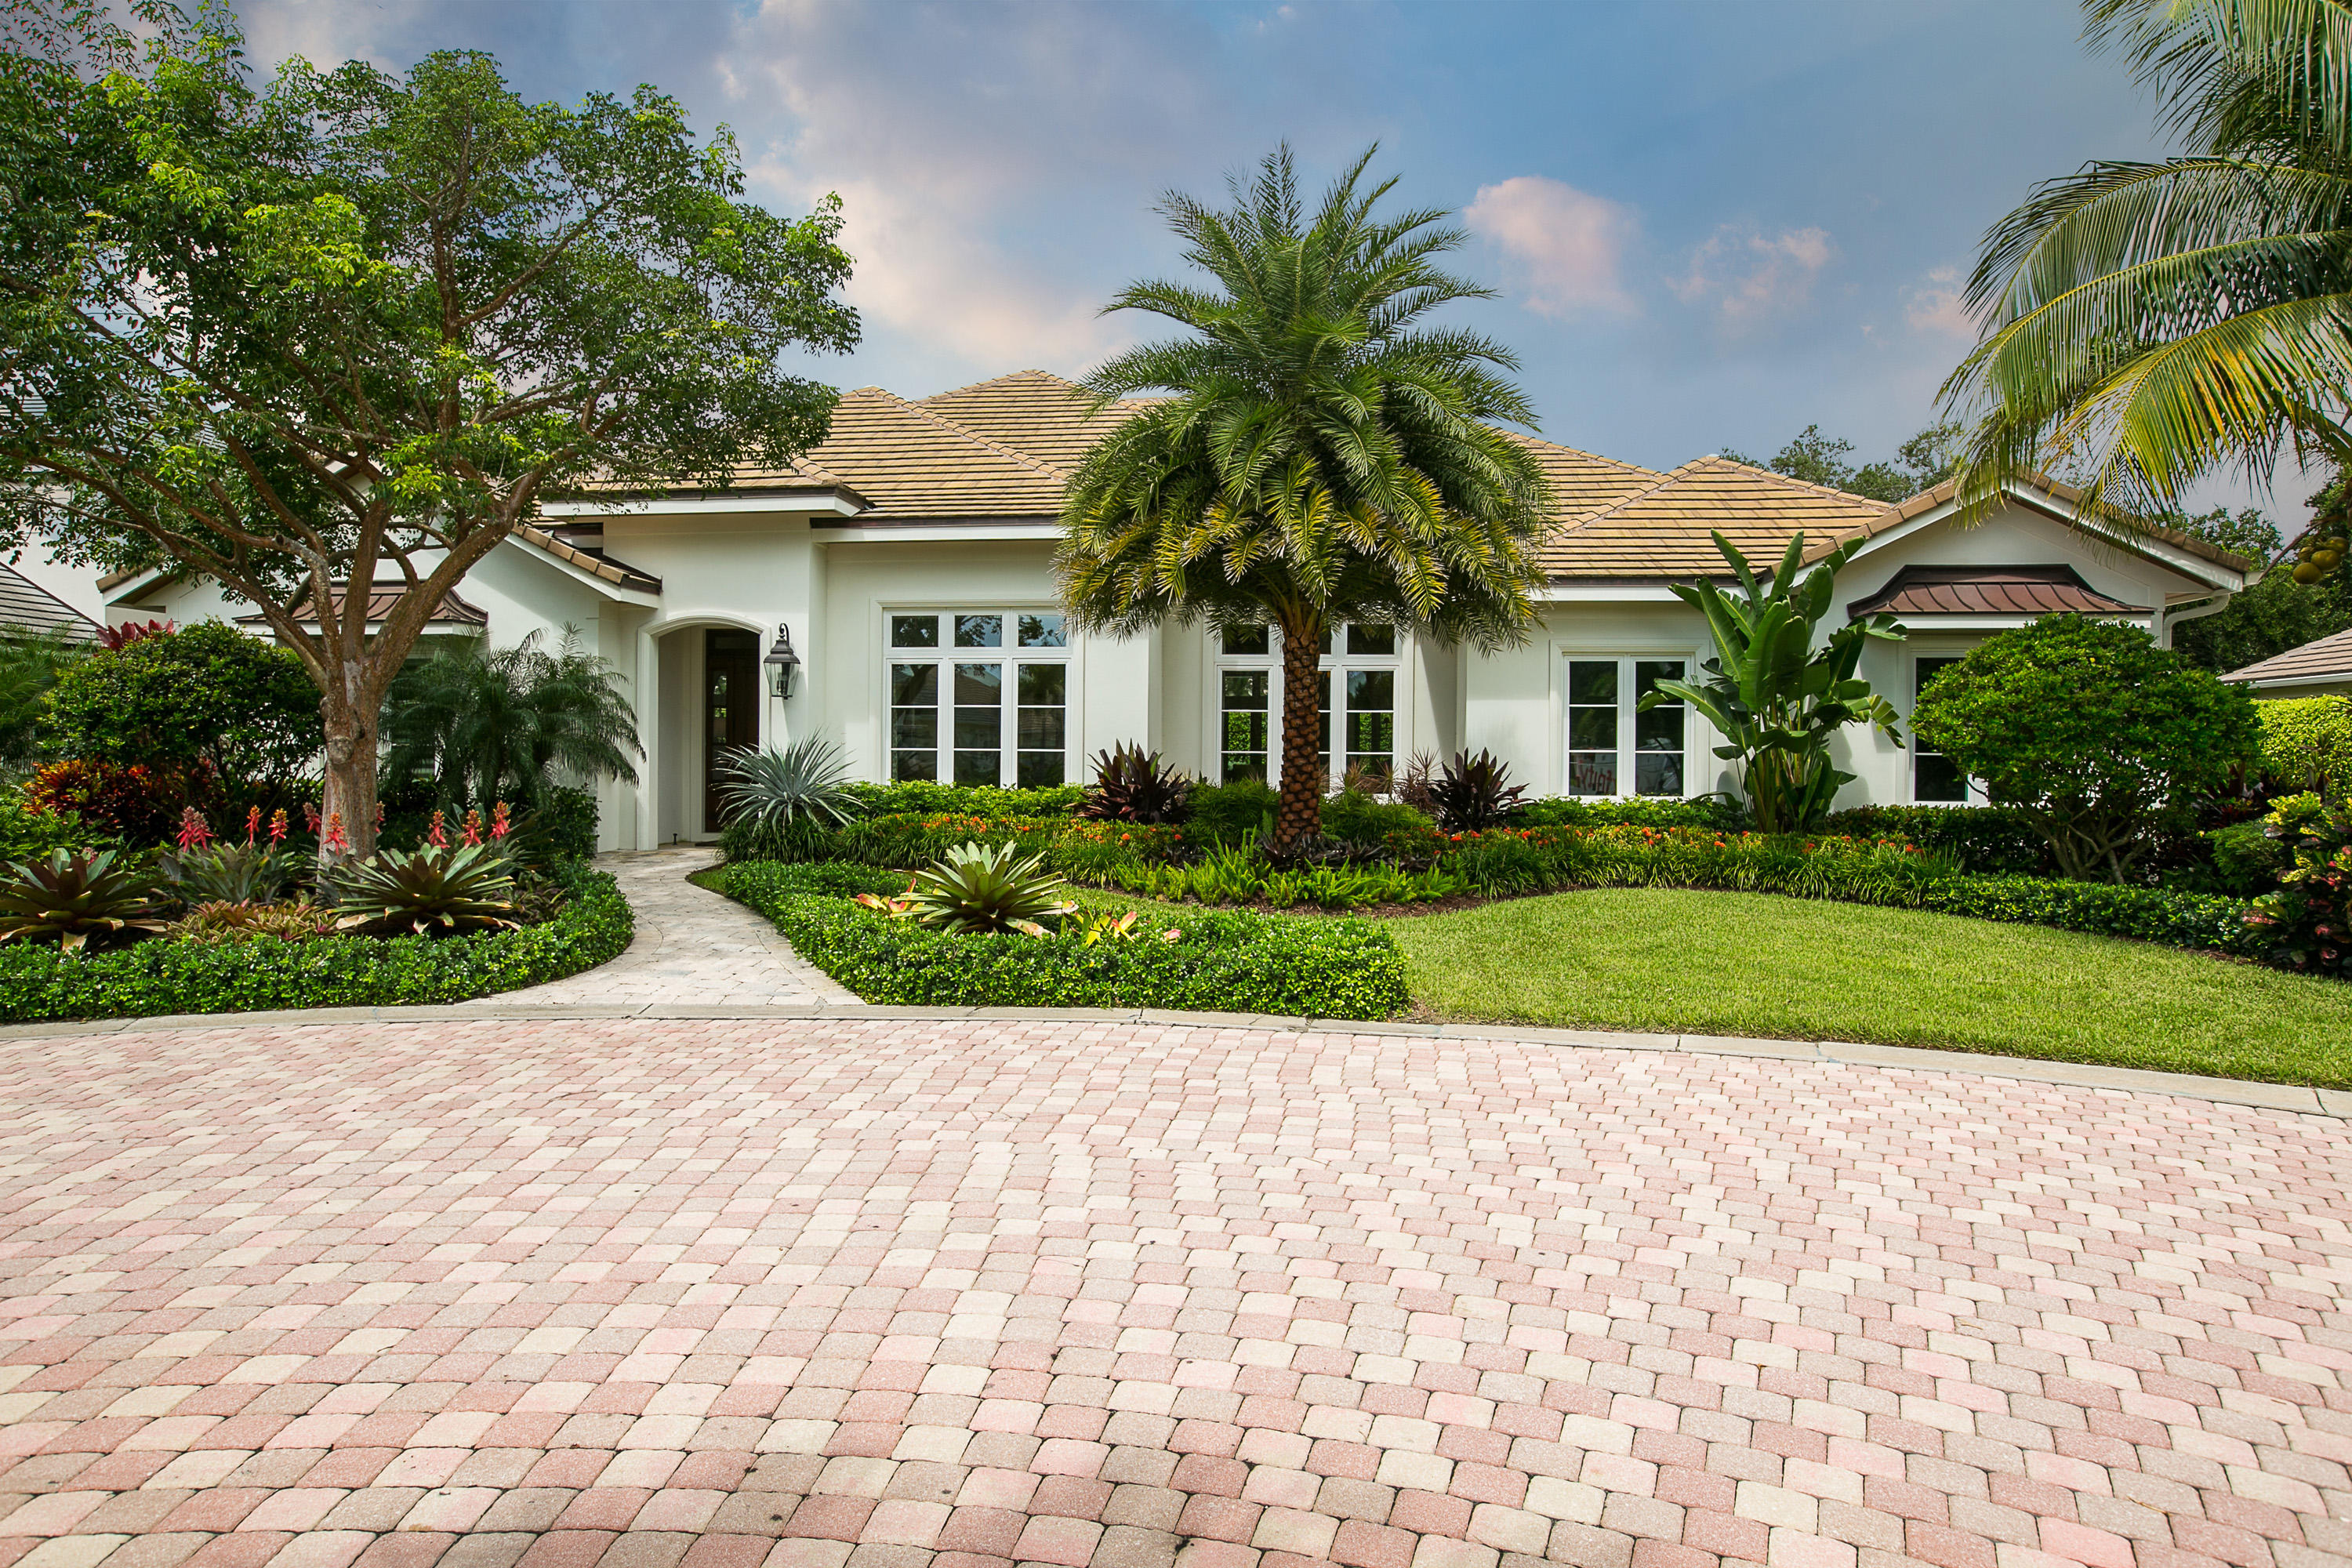 16 Sea Colony Dr. Vero Beach 32963